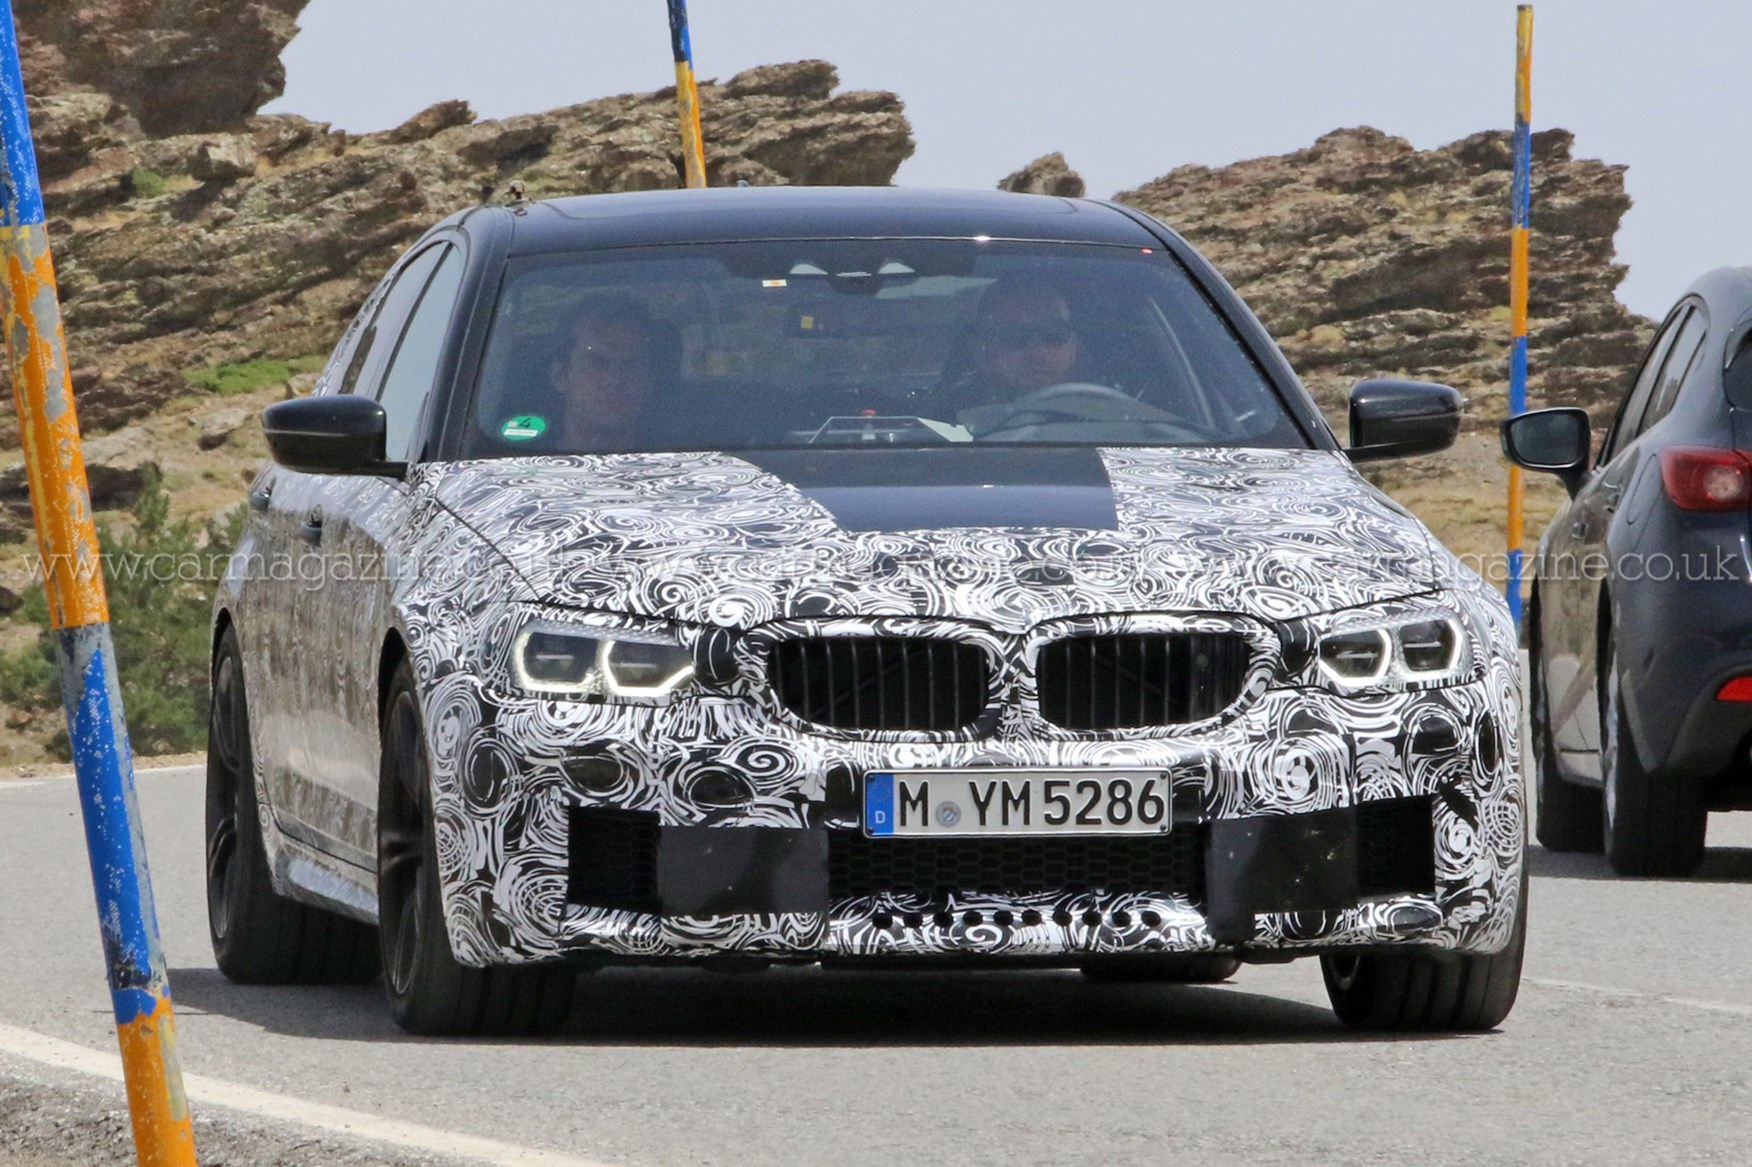 new 2017 bmw m5 spotted meet the new g30 hot rod by car